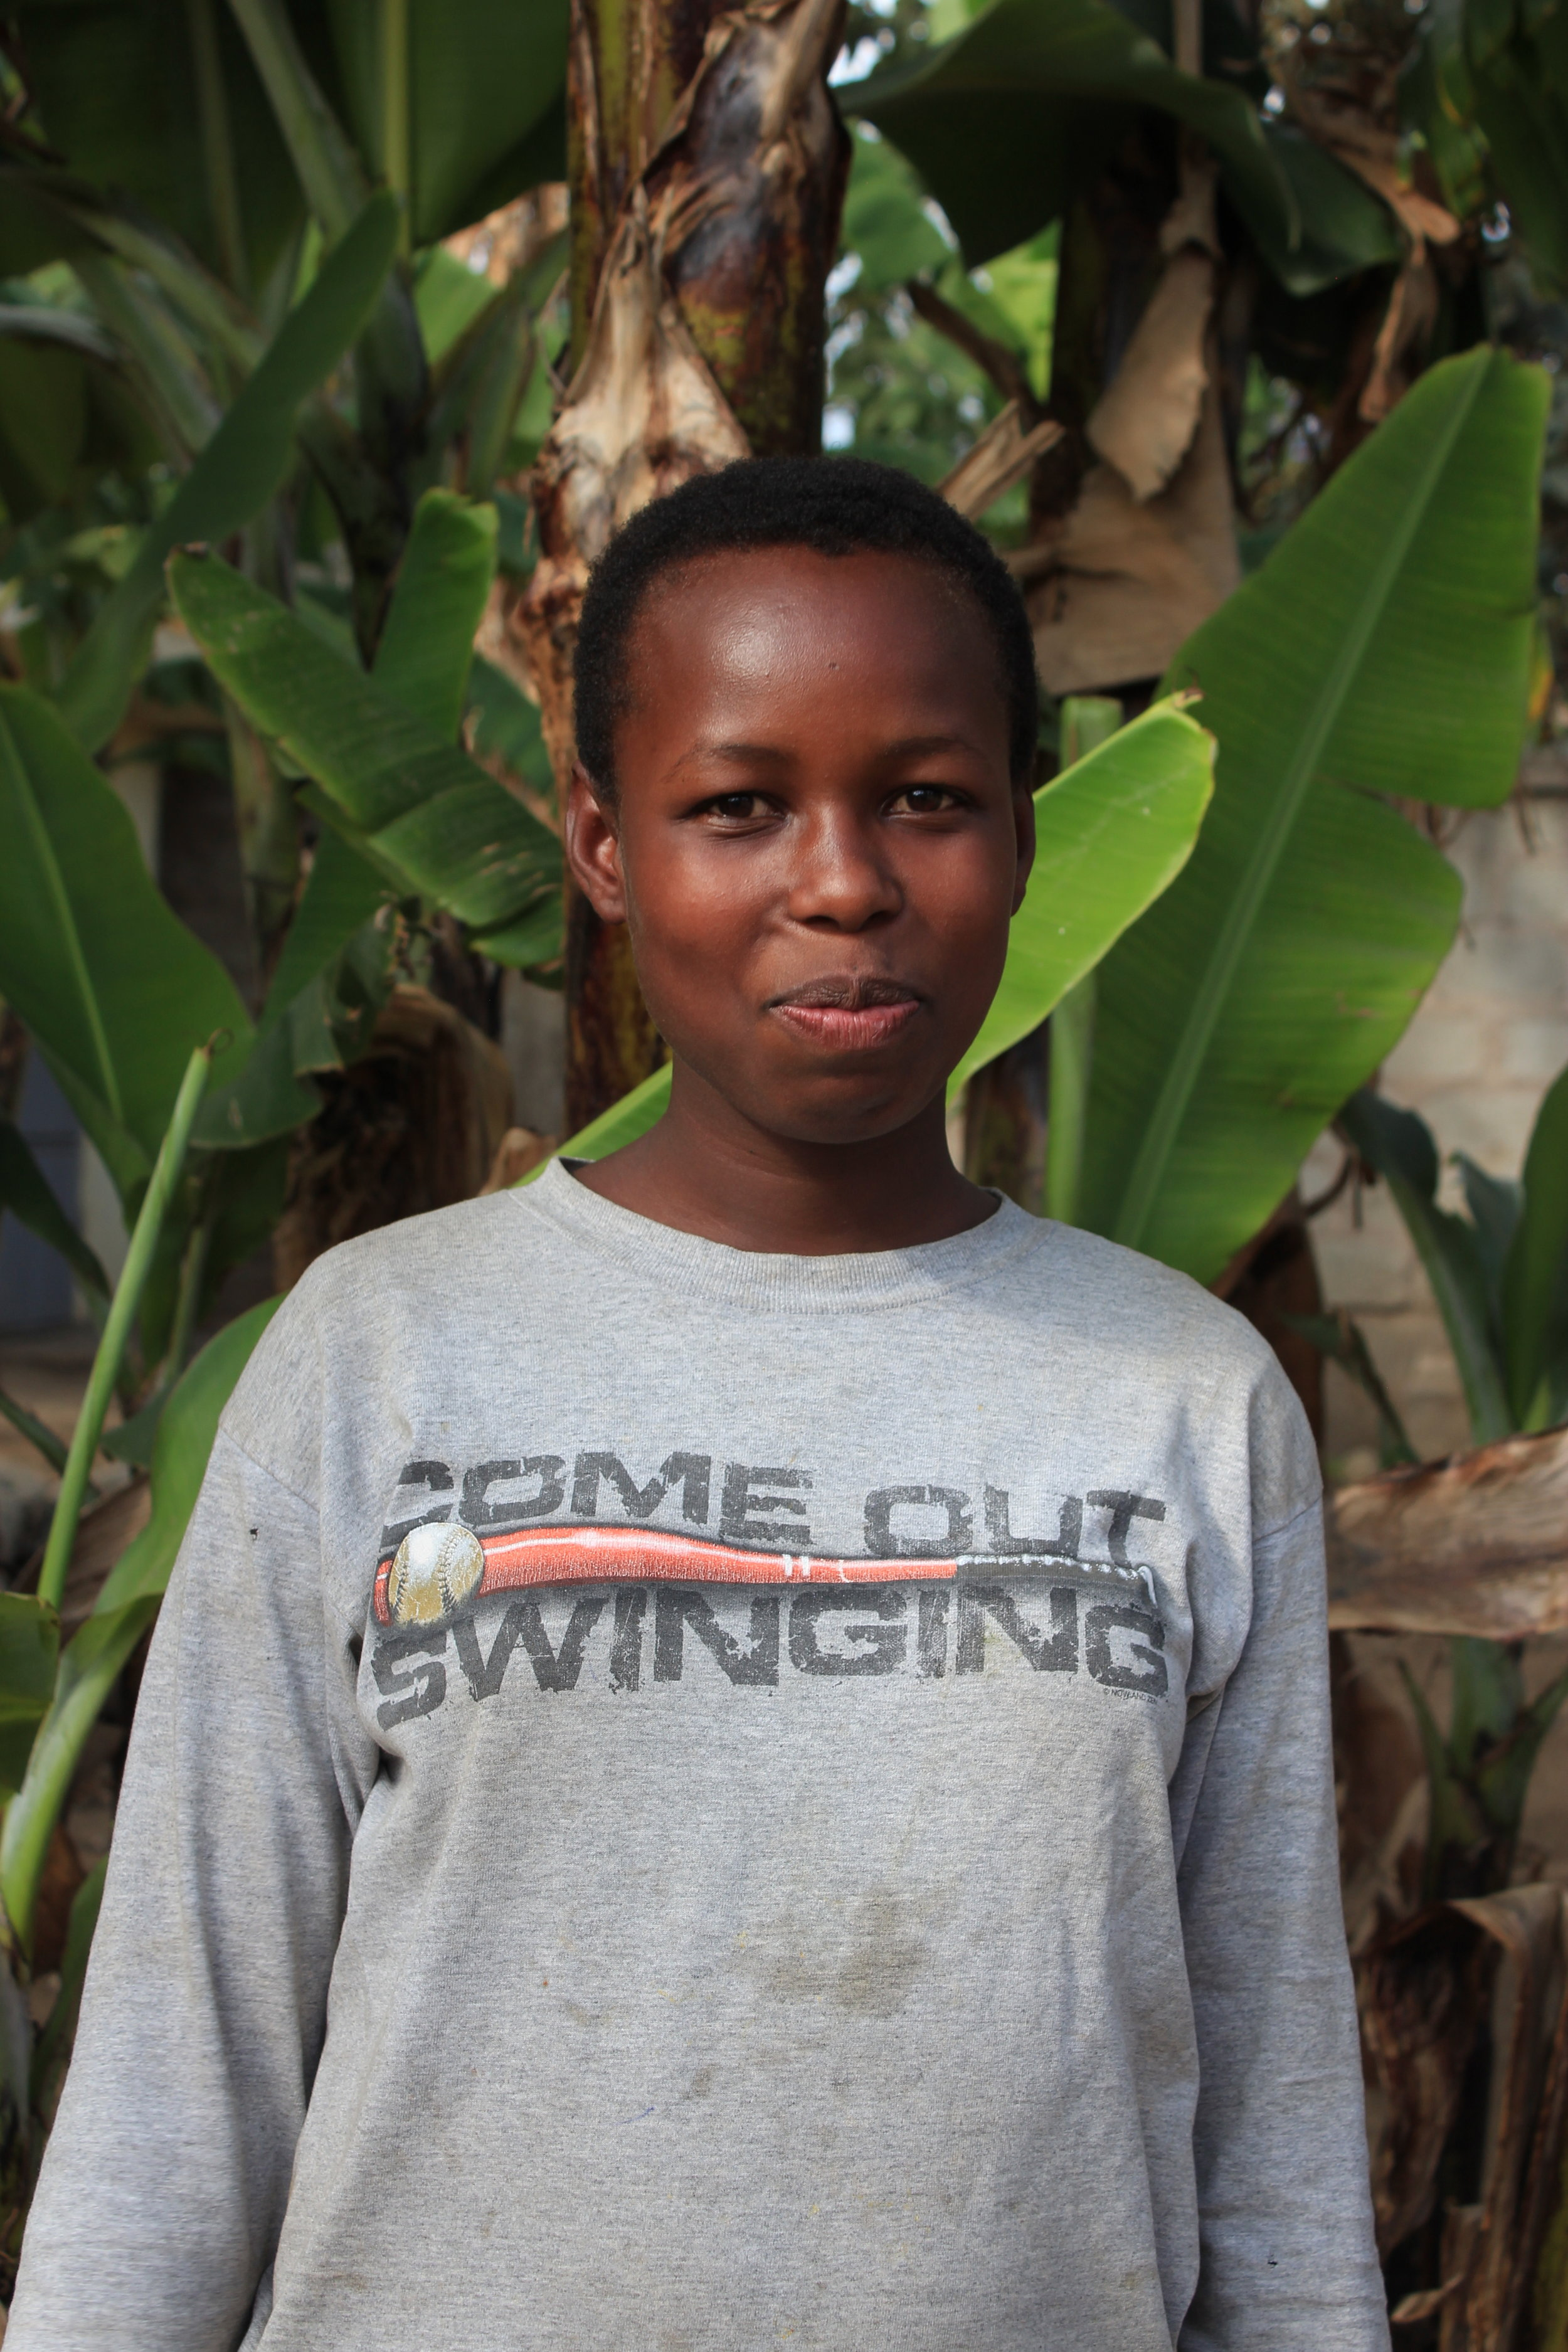 Diana, 15 - Diana's father passed away from HIV/AIDS and her mother is unable to care for her as she is suffering with the same disease. Although Diana is somewhat quiet in comparison to her brothers and sisters at the orphanage, she is still so full of life, health, and joy!